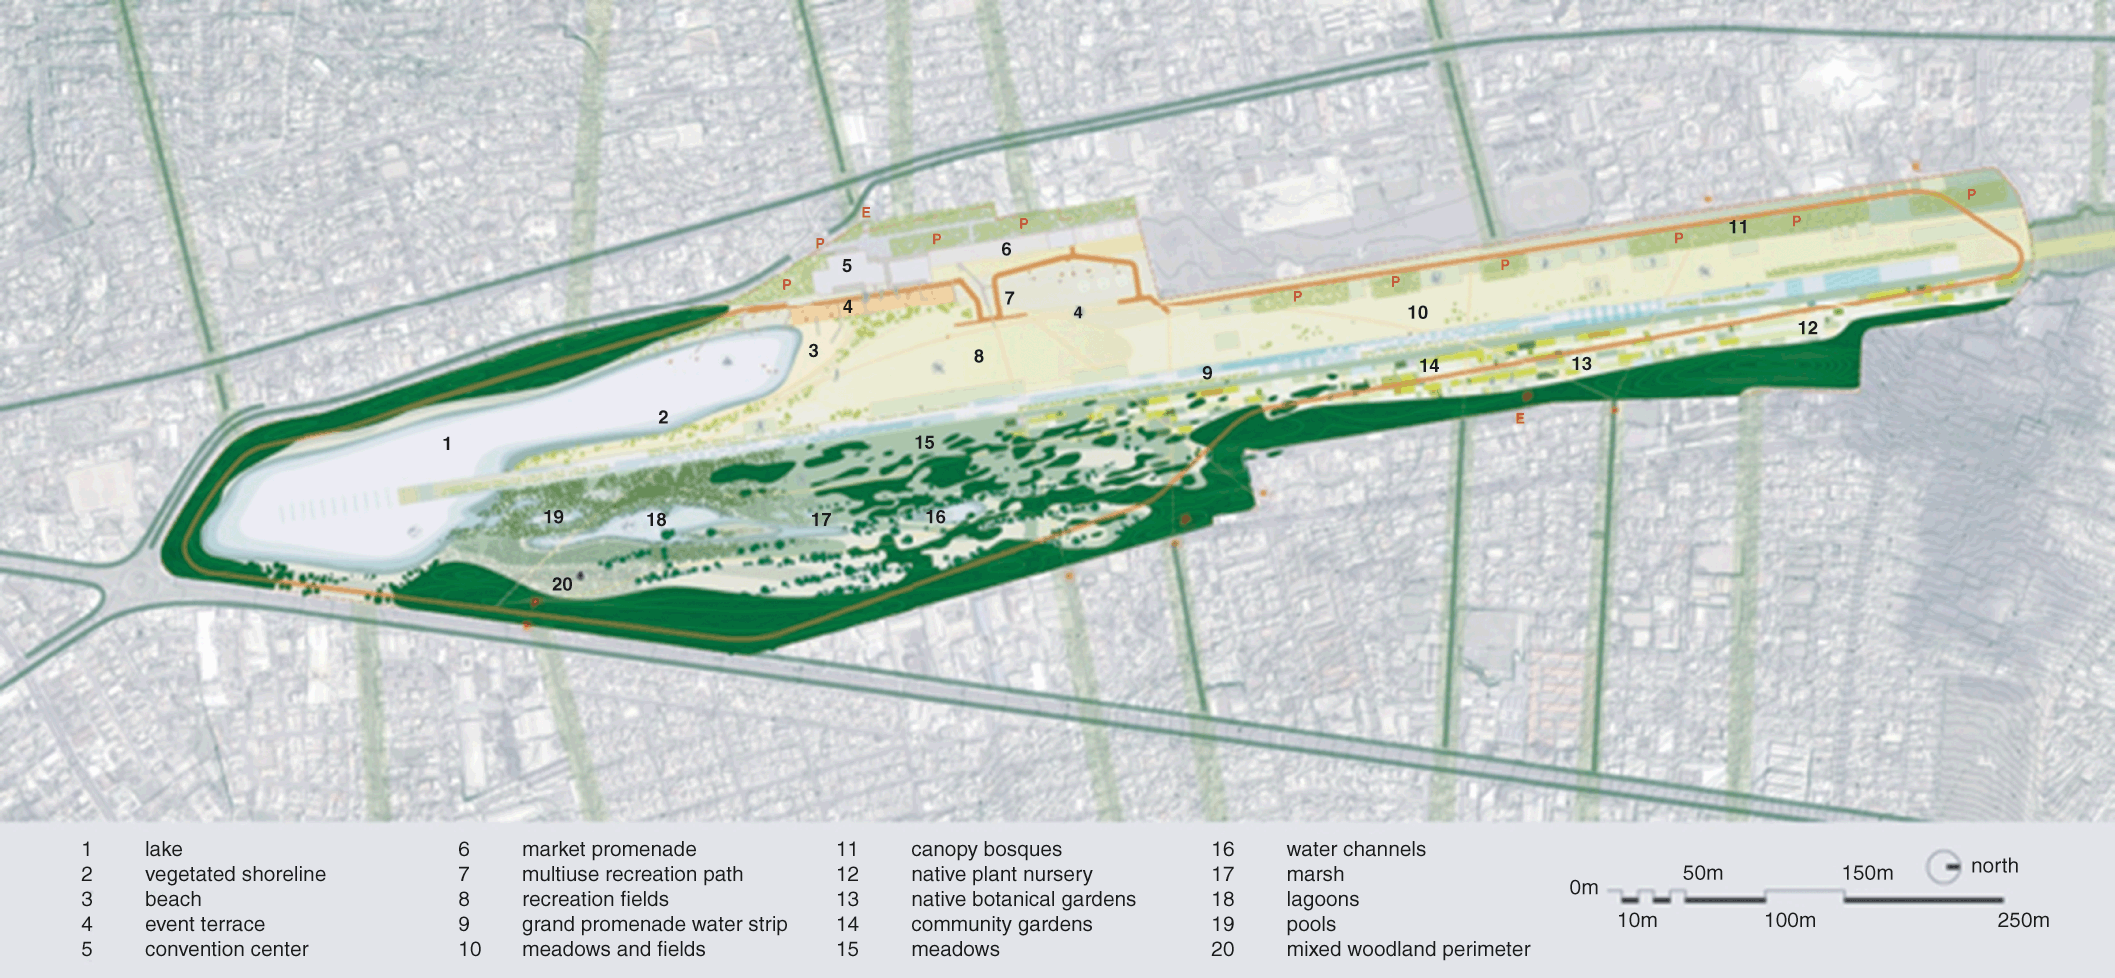 Case Study Annex (Annex 5) - Climate Change and Cities